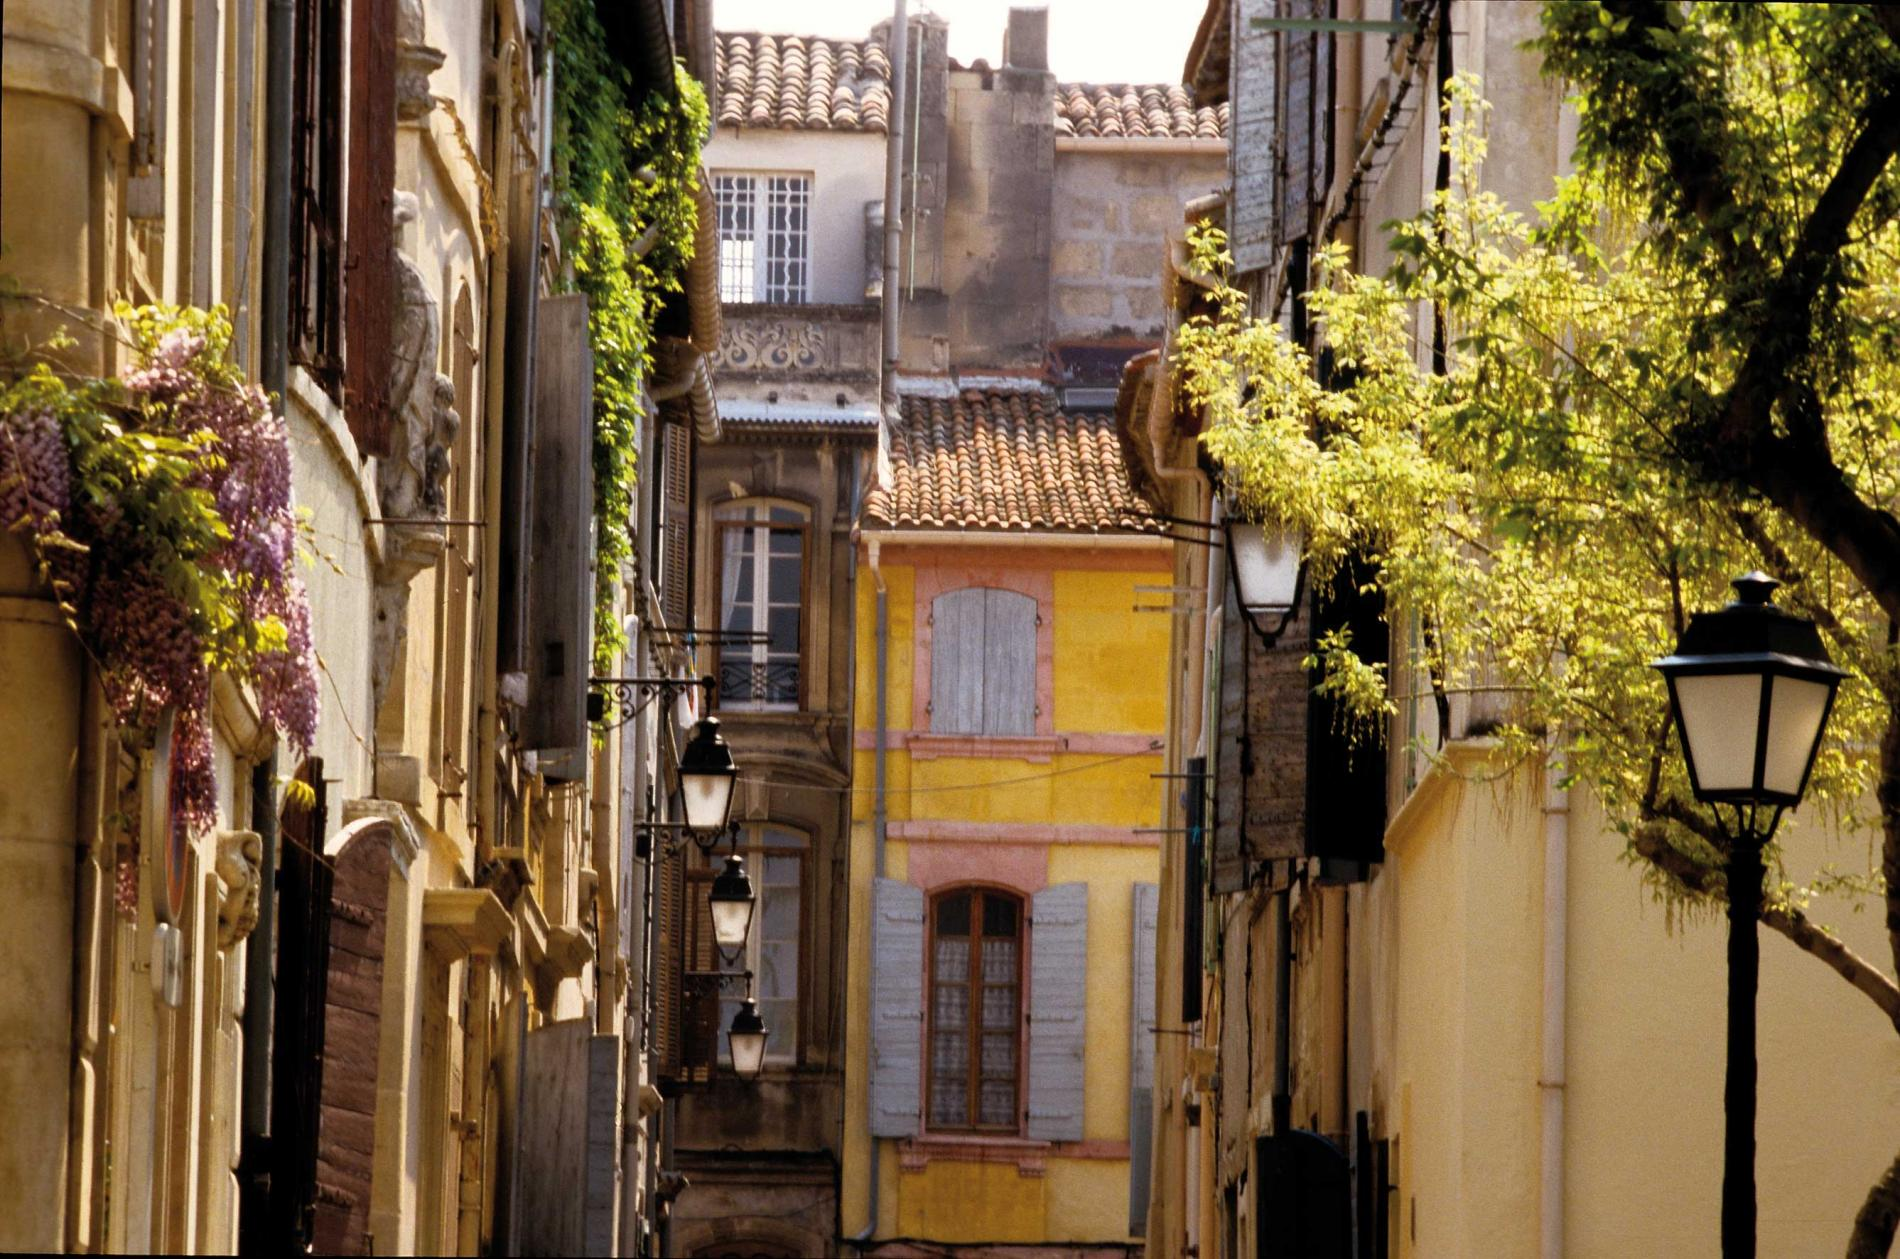 A narrow street with brightly coloured houses in Aix-en-Provence